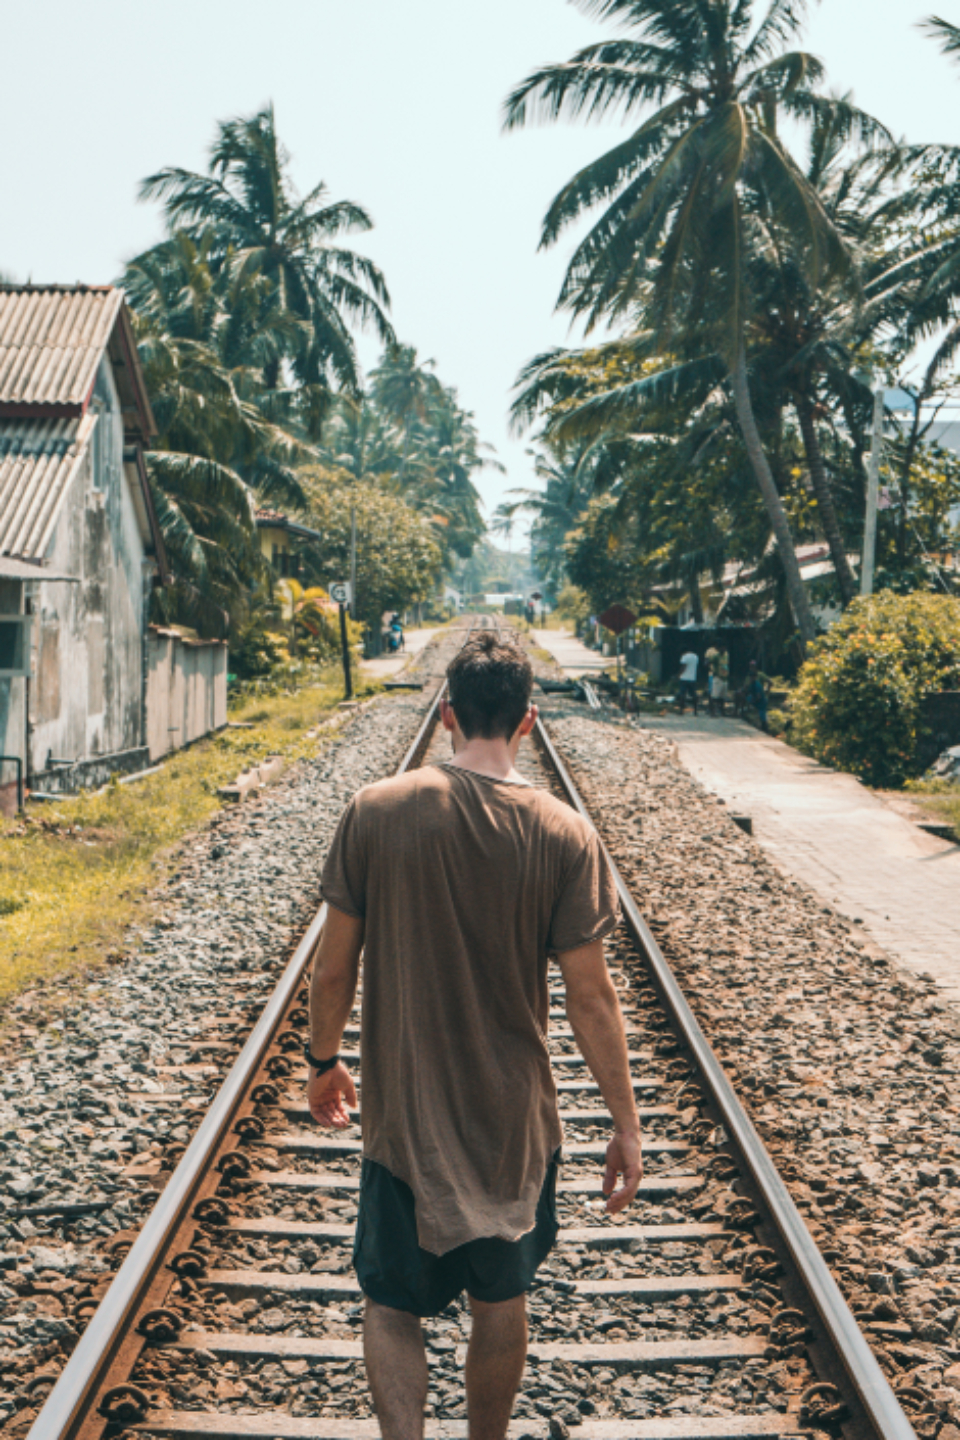 man walking tracks train transport alone summer vacation holiday travel palm tree house building